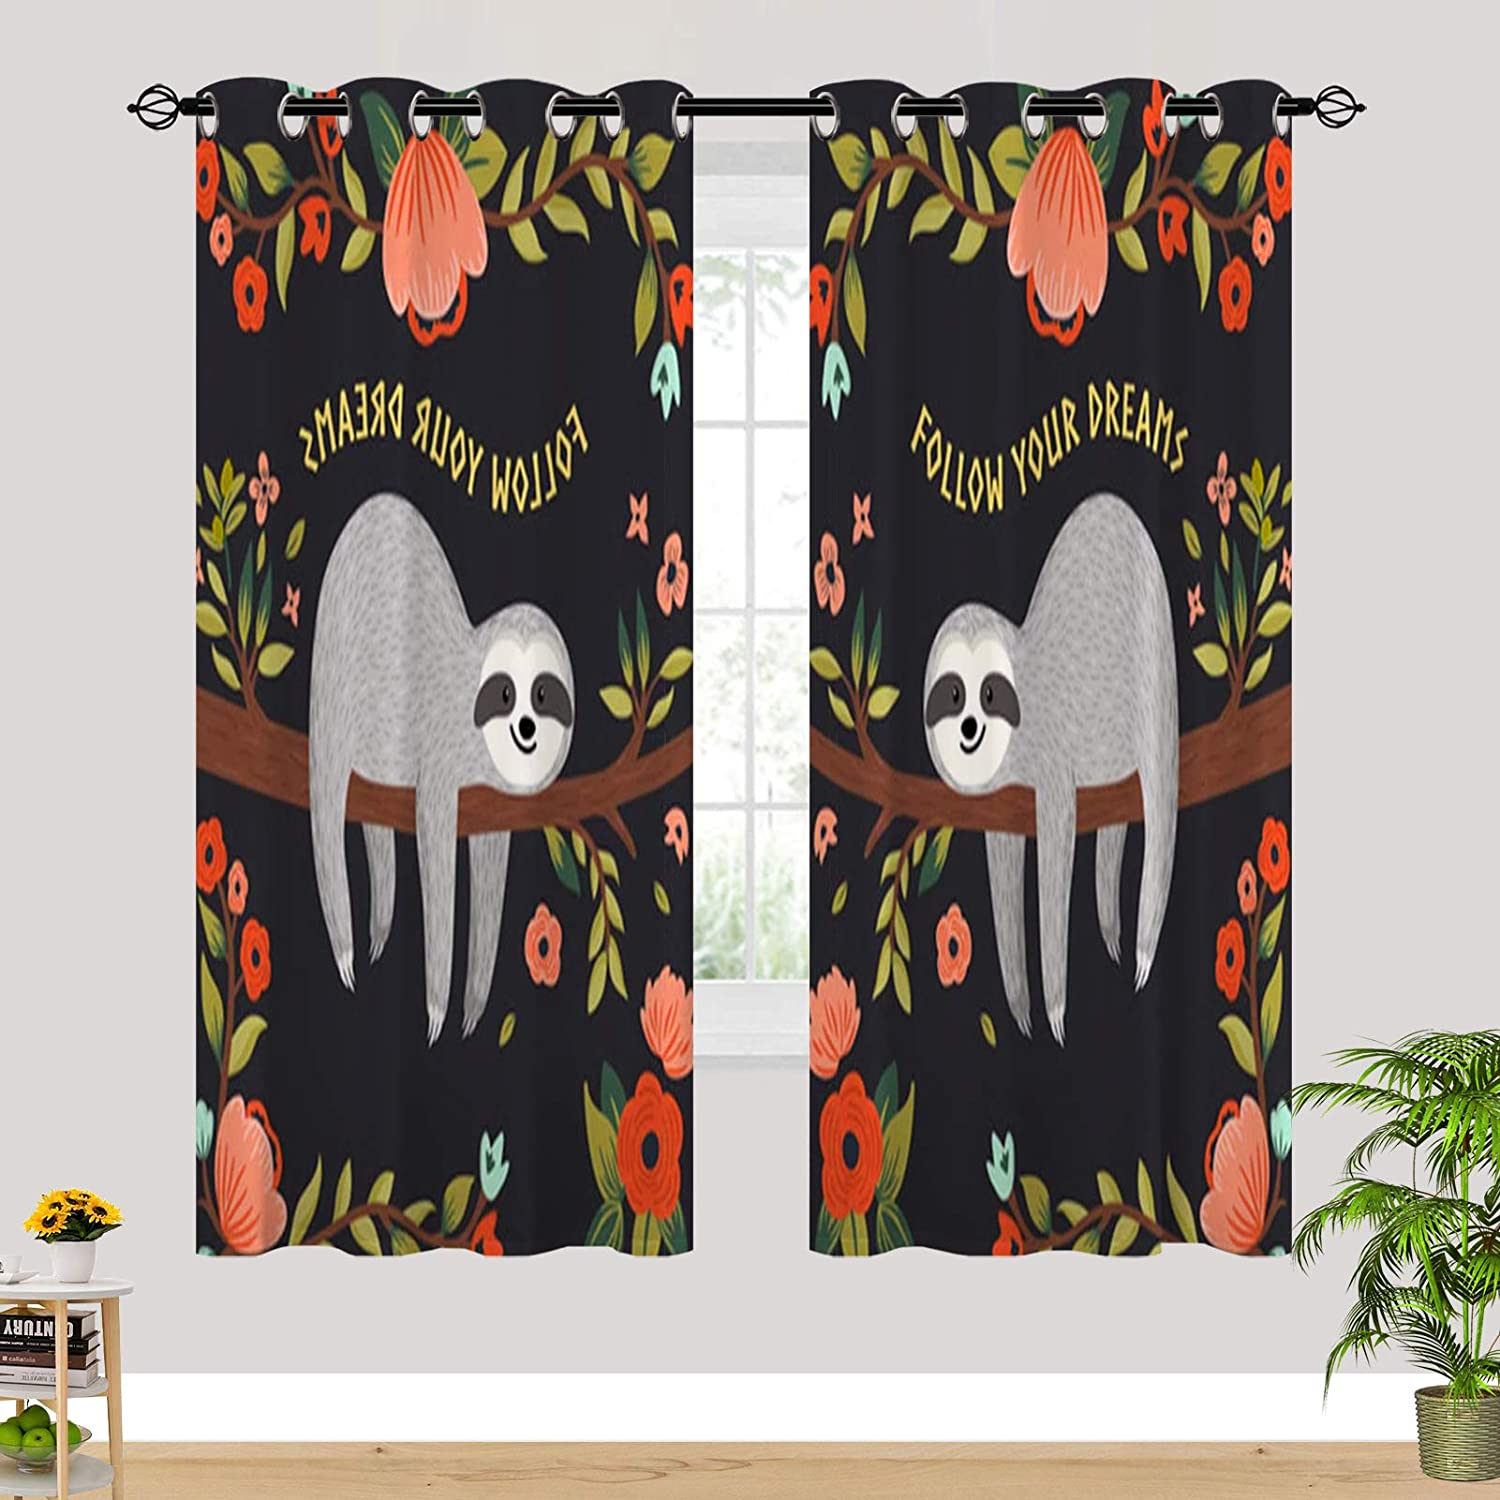 San Jose Mall ANHOPE Sloth Curtains for Girl Bedroom Dreams Japan's largest assortment Your Follow Cute